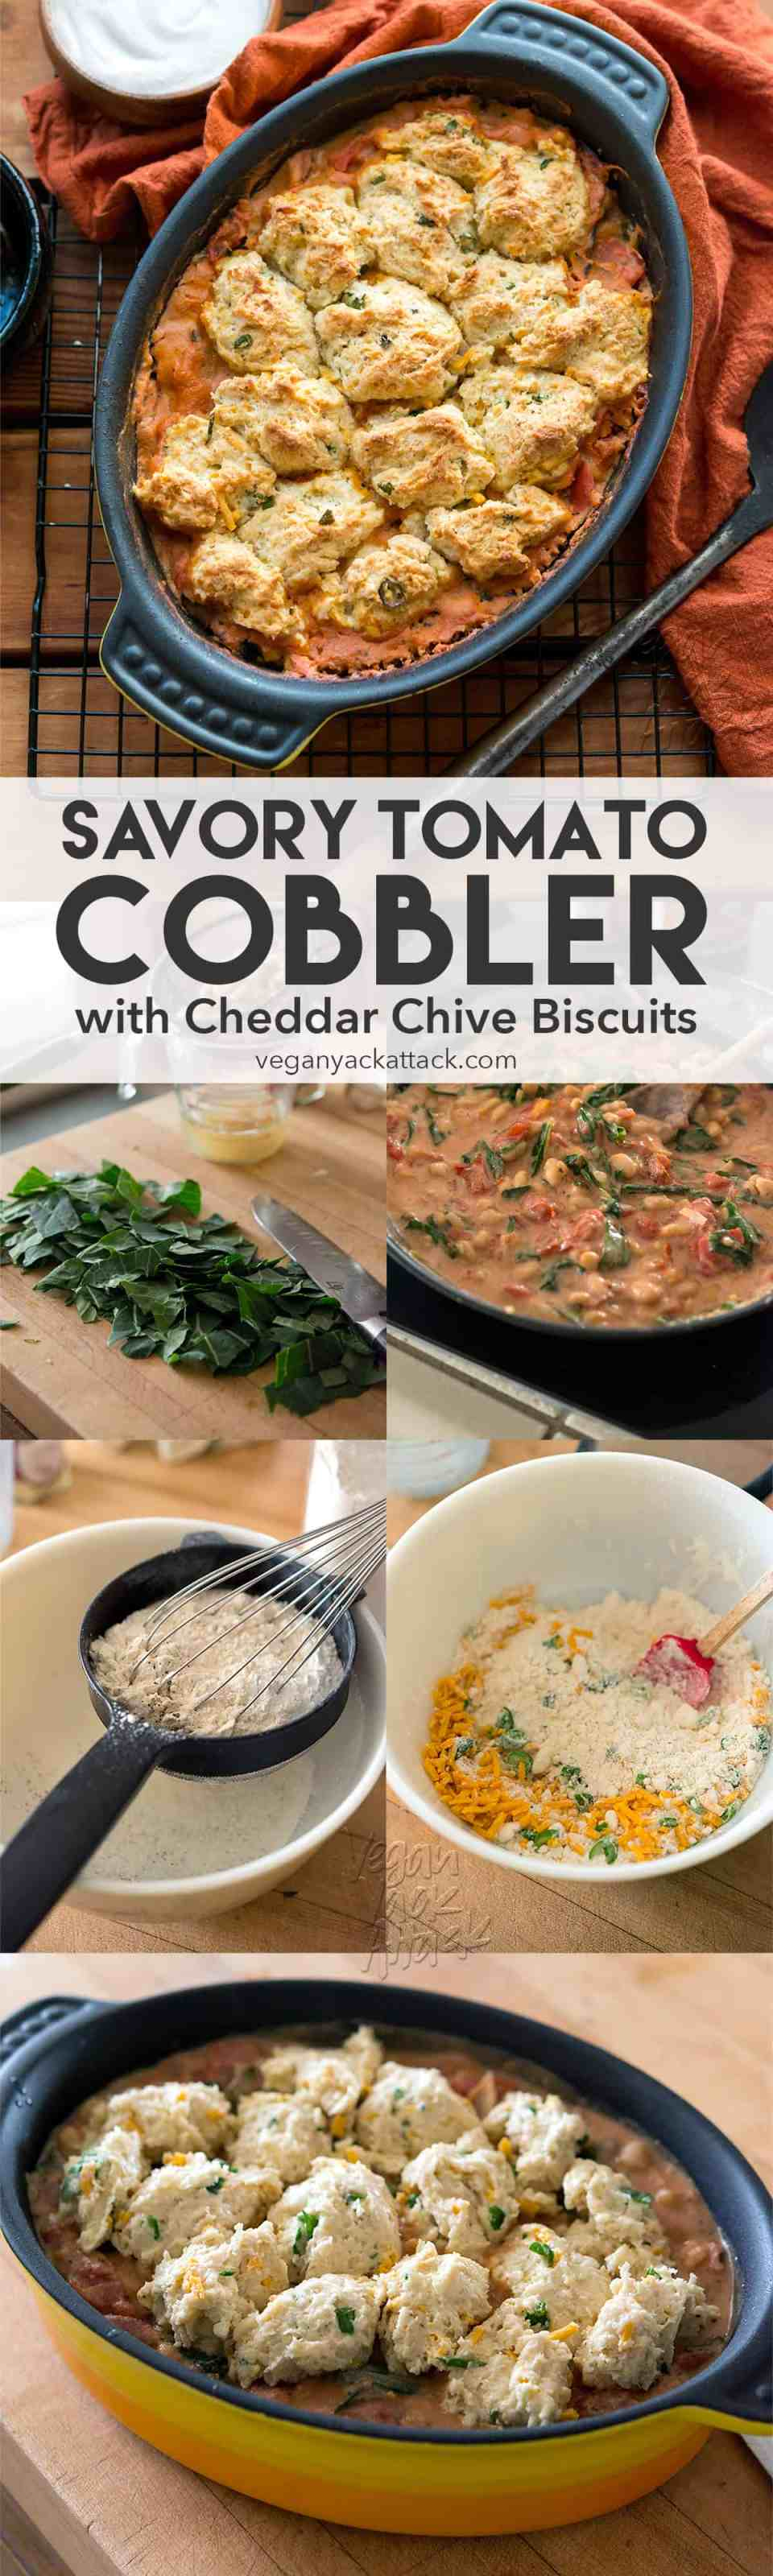 Savory Tomato Cobbler with Vegan Cheddar Chive Biscuit topping! Delicious, hearty and perfect for a weeknight dinner. #nutfree #dairyfree #sponsored #DoPlants